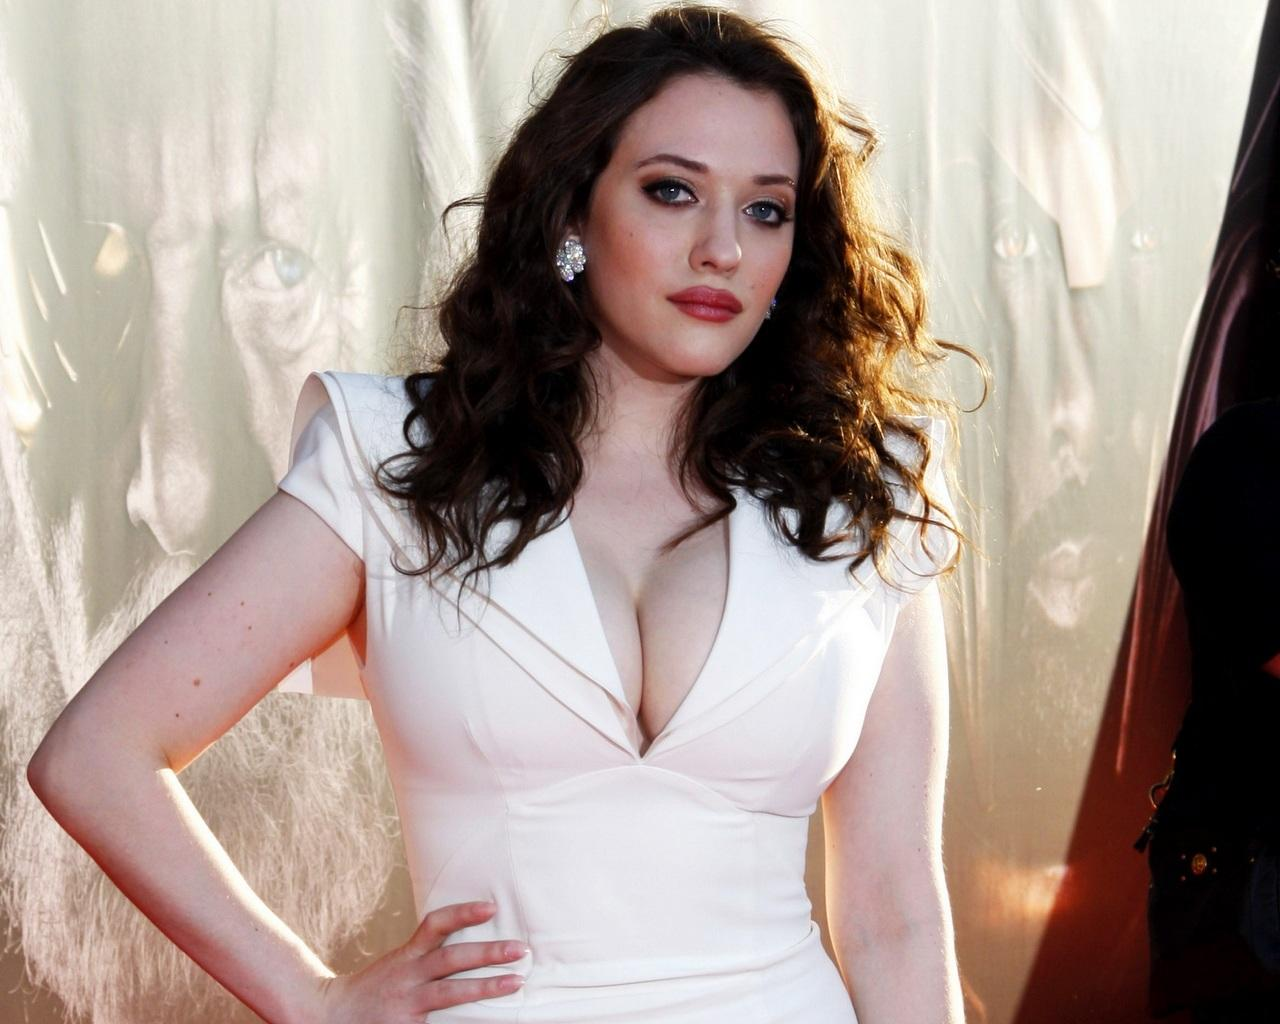 kat-dennings-hot-wallpapers-in-bikini